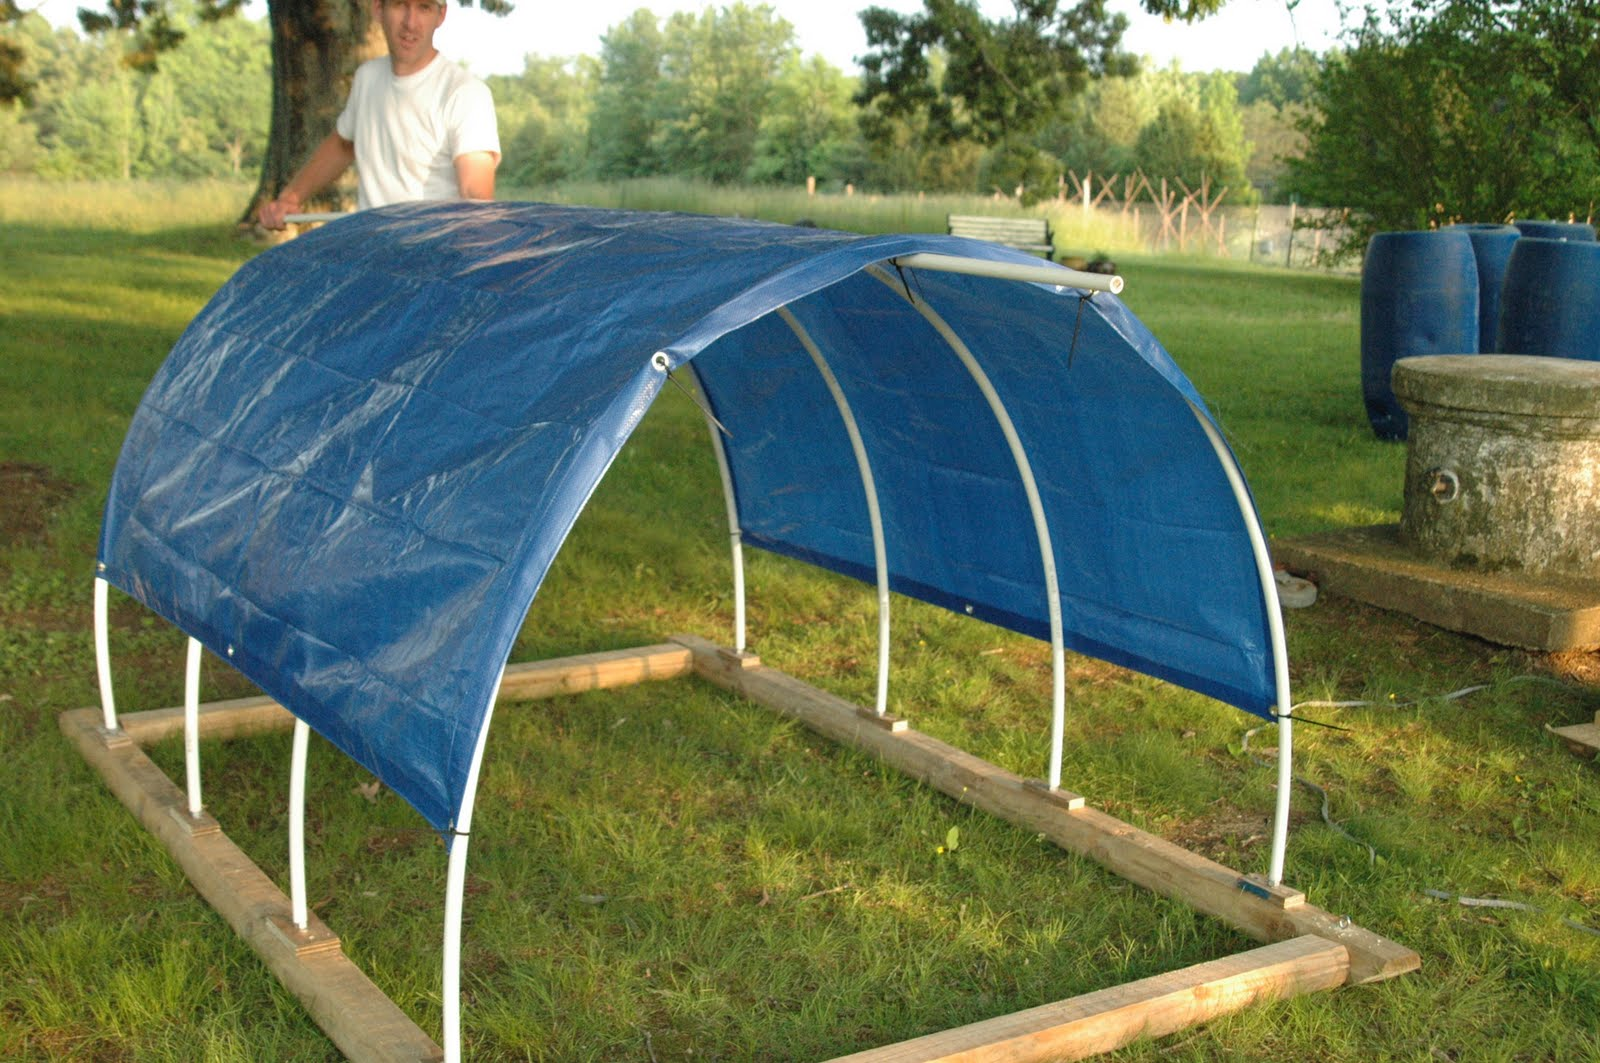 Diy Calf Shelter : Green legacy farm moooovin along portable calf shelter